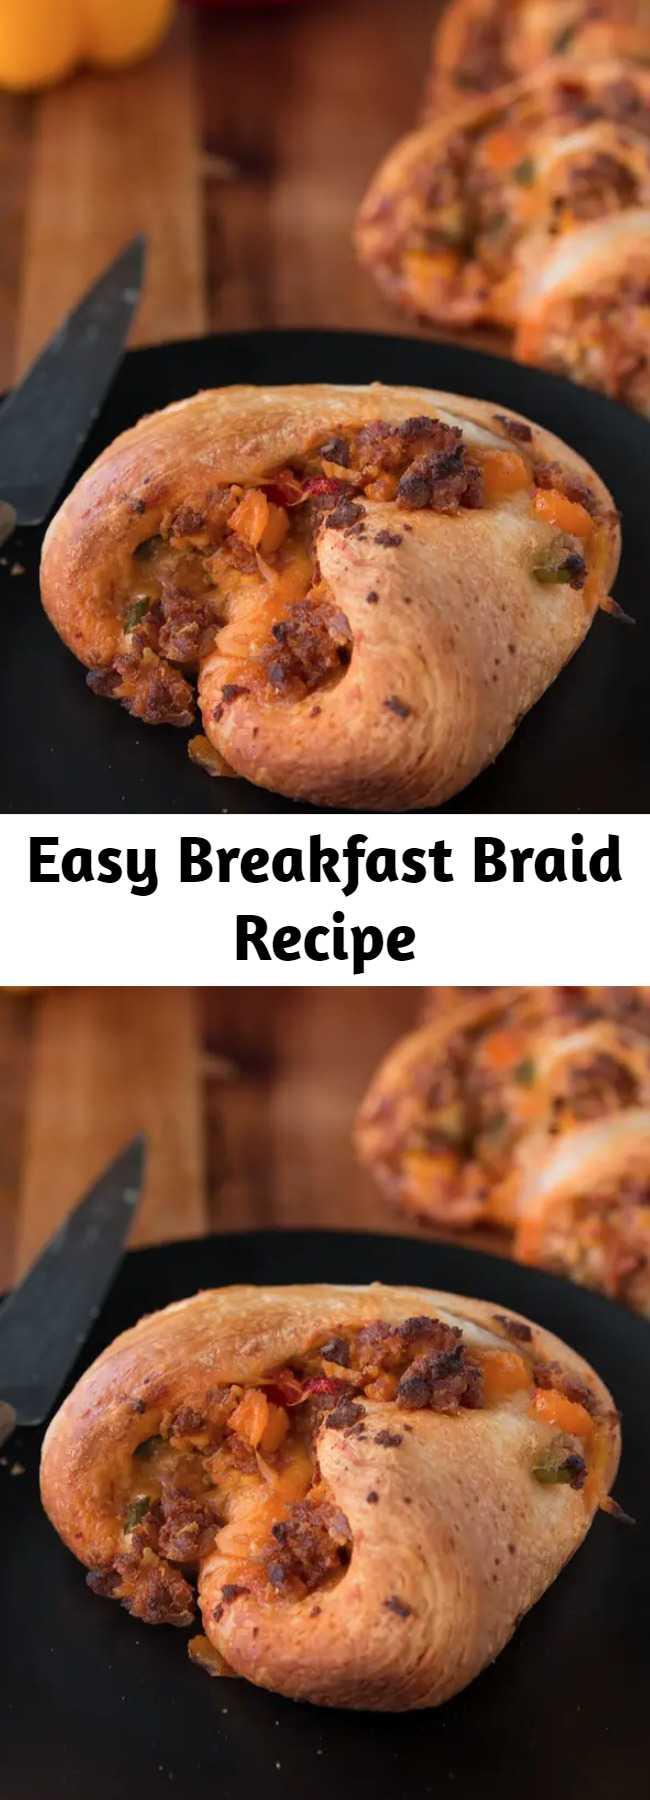 Easy Breakfast Braid Recipe - This breakfast braid is so delicious. You're gonna wanna devour it.